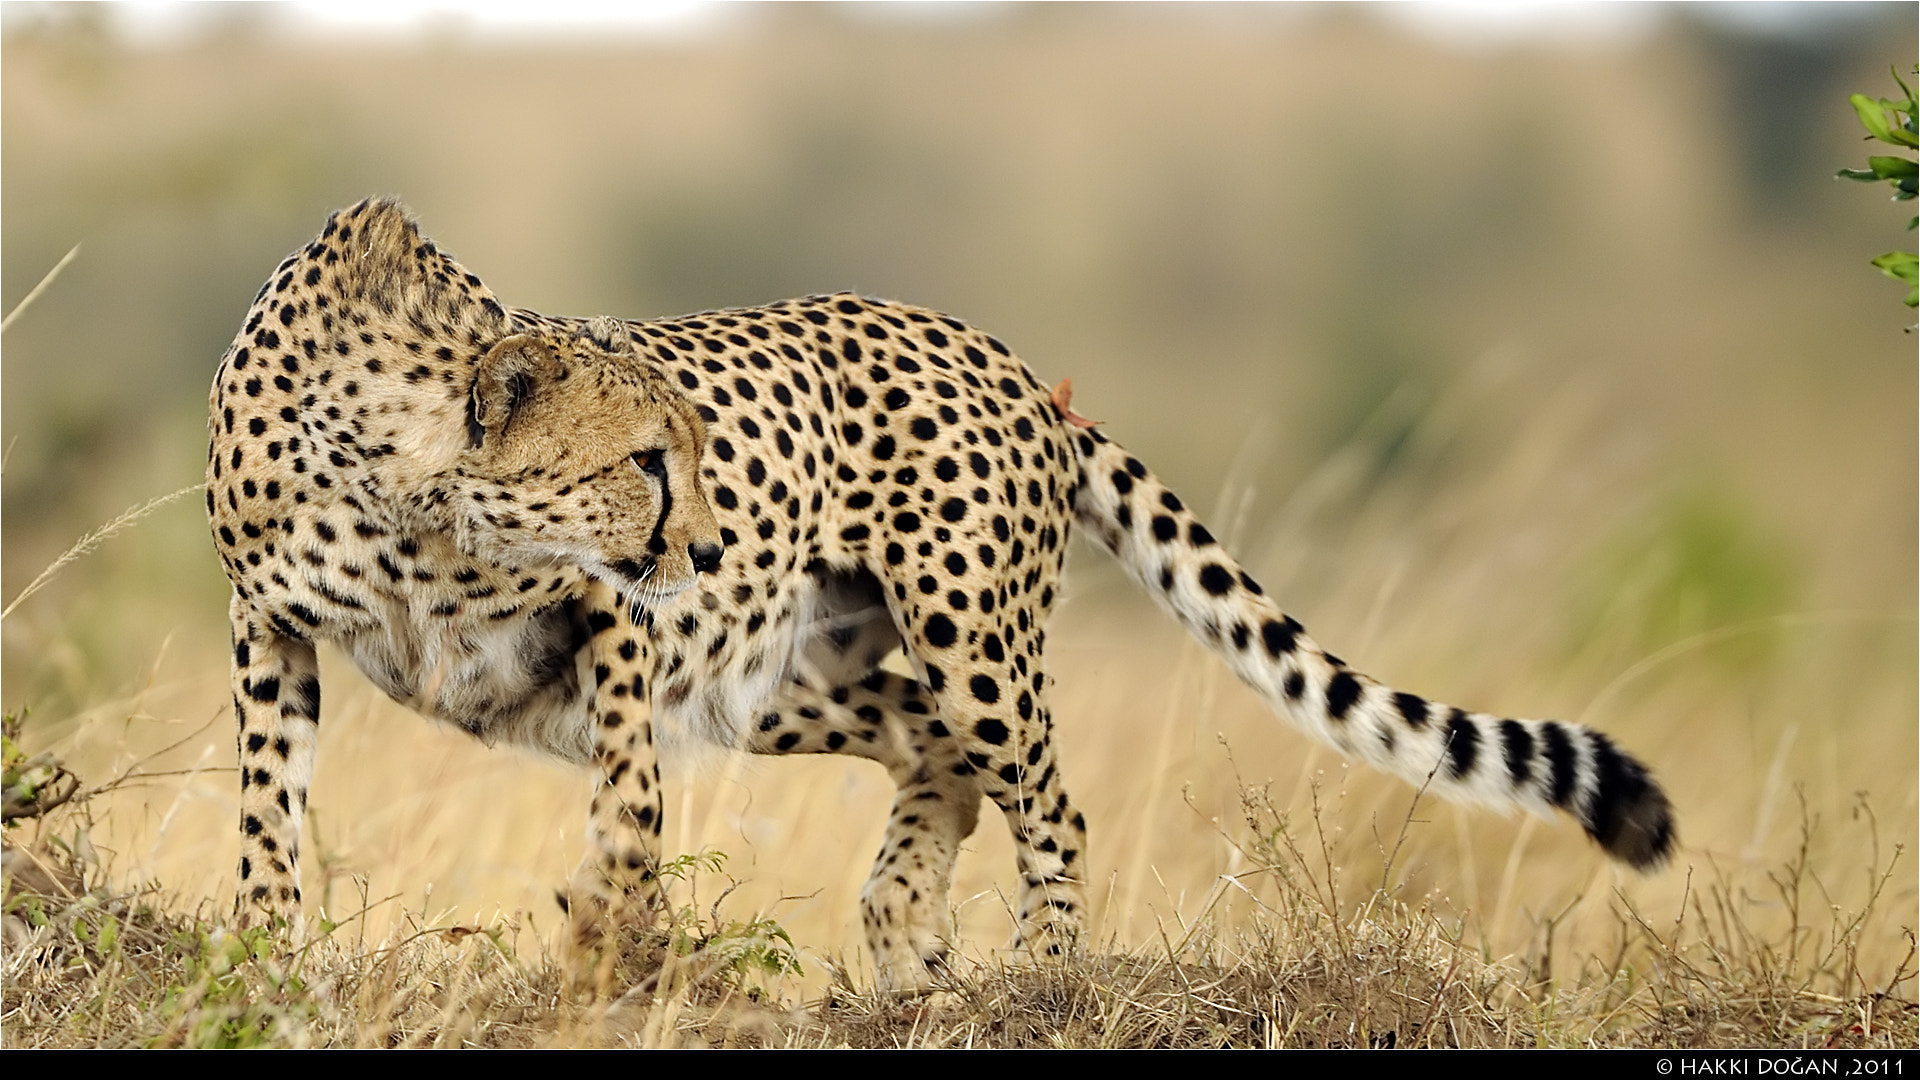 Photograph Cheetah by Hakki Dogan on 500px